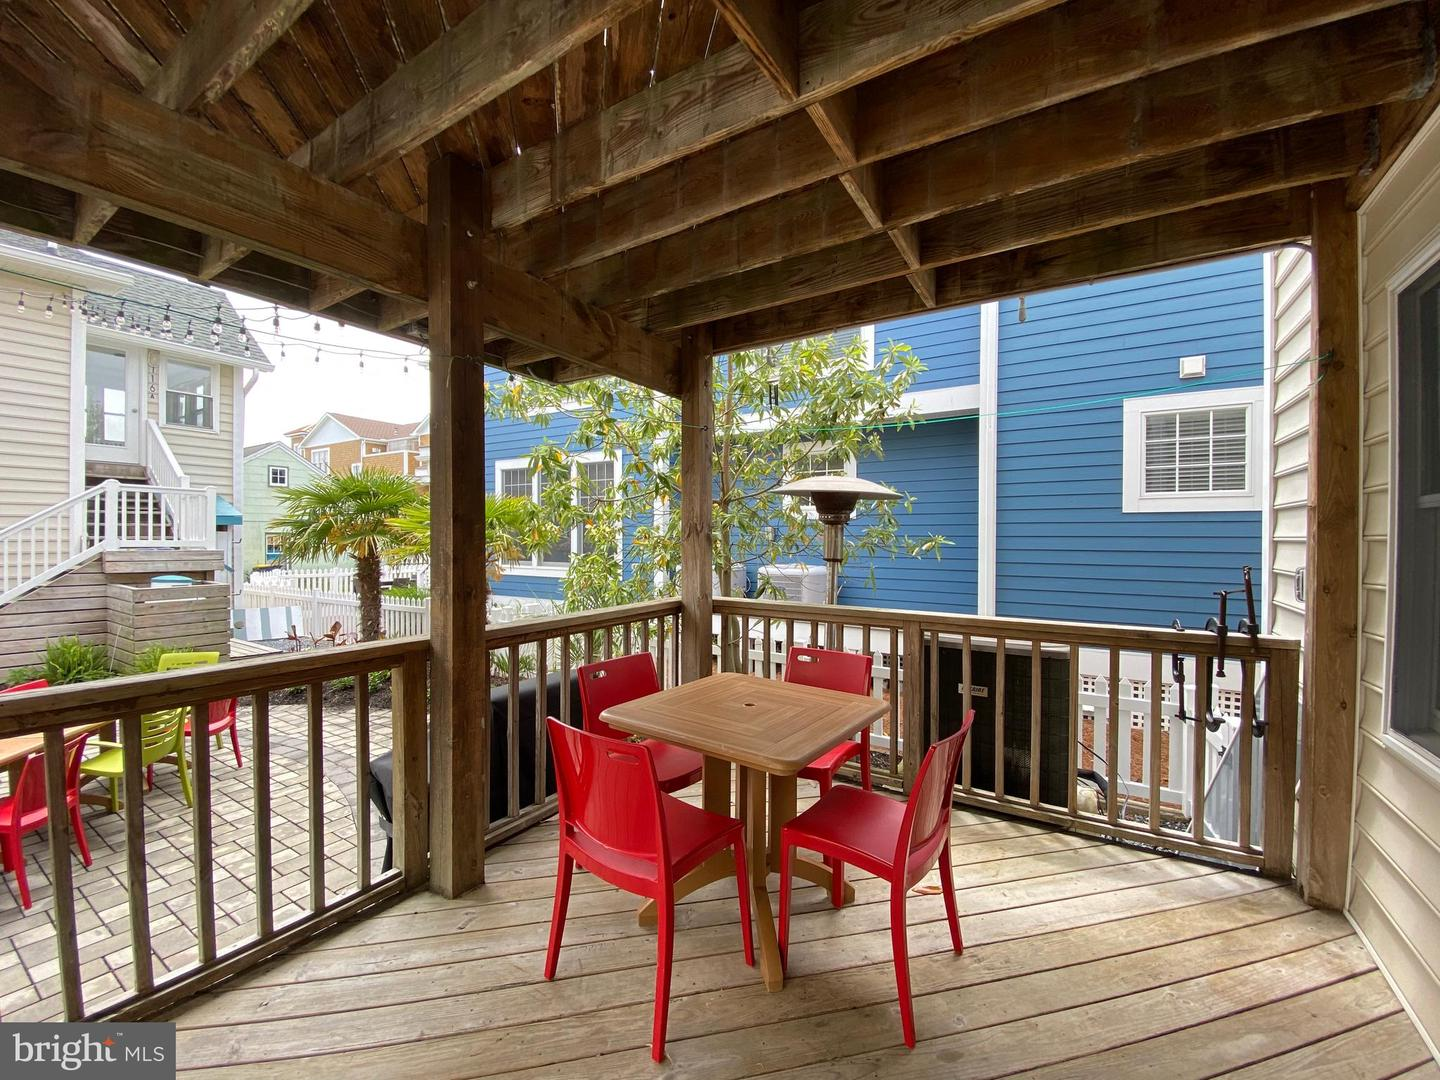 DESU161746-304145716277-2020-05-30-11-15-25 116 Hollywood St | Bethany Beach, DE Real Estate For Sale | MLS# Desu161746  - Ocean Atlantic